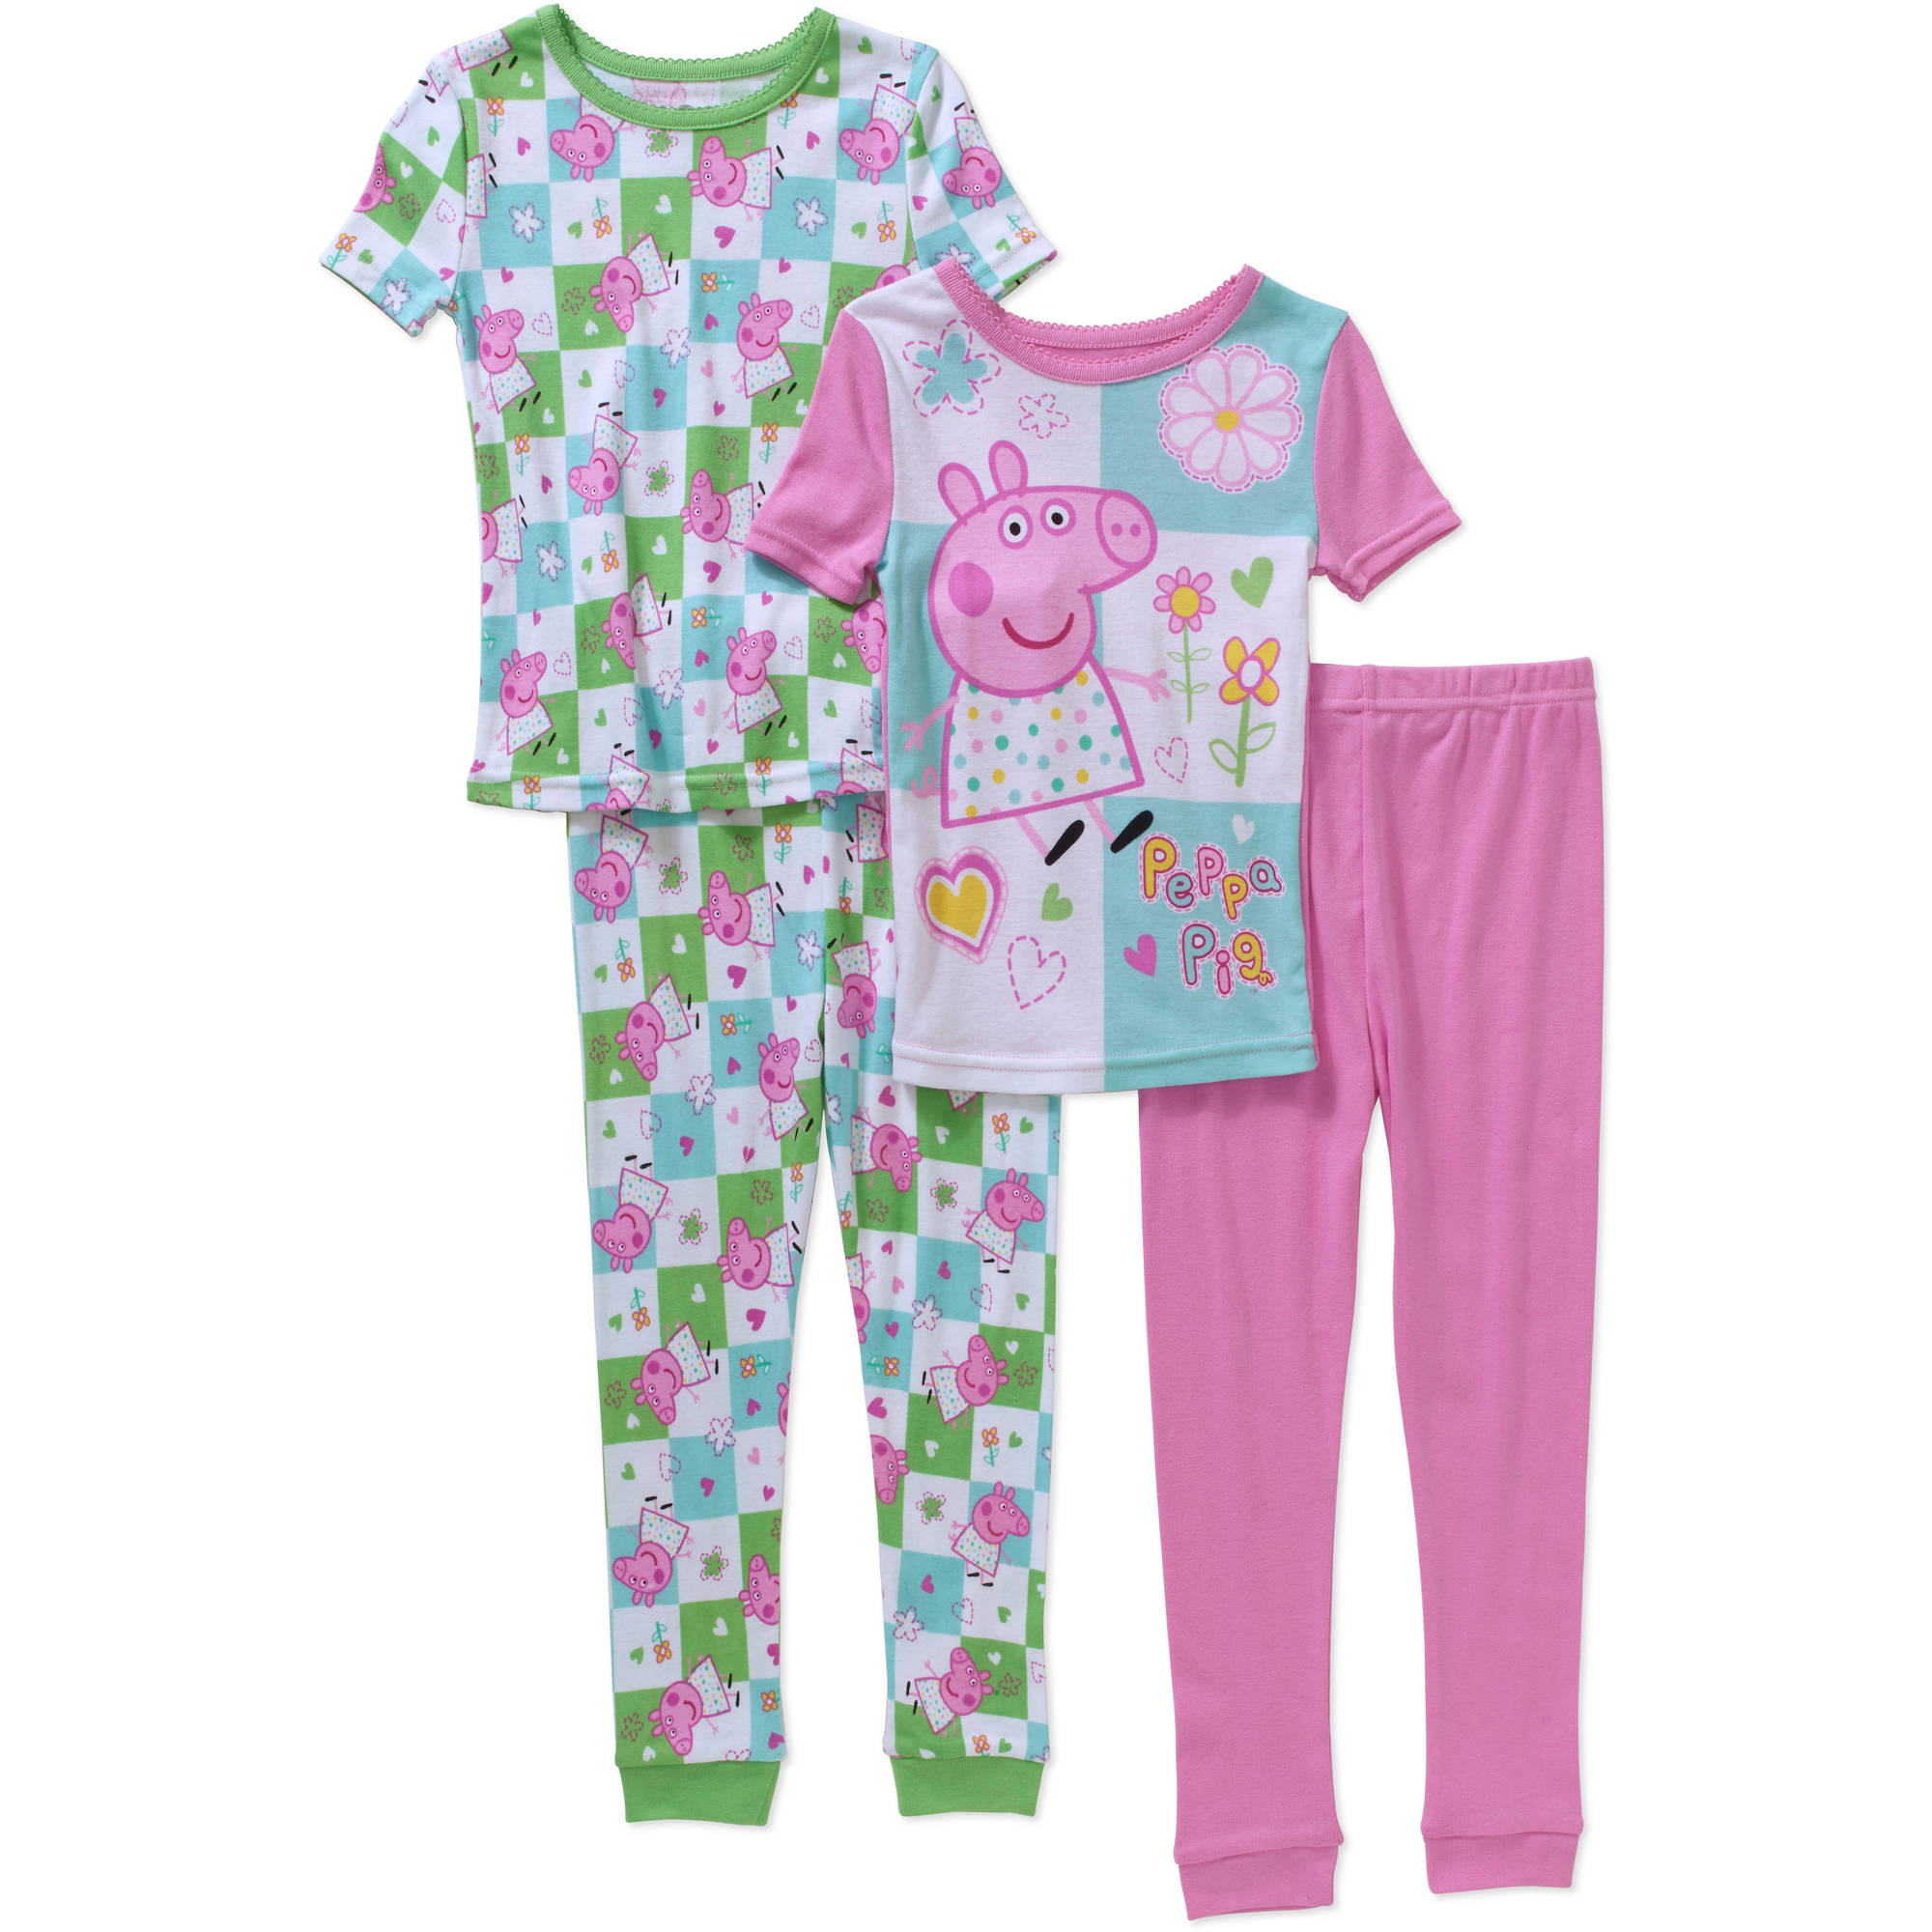 Toddler Girls' Cotton Tight Fit Short Sleeve Pajama 4-Piece Set-Online Exclusive